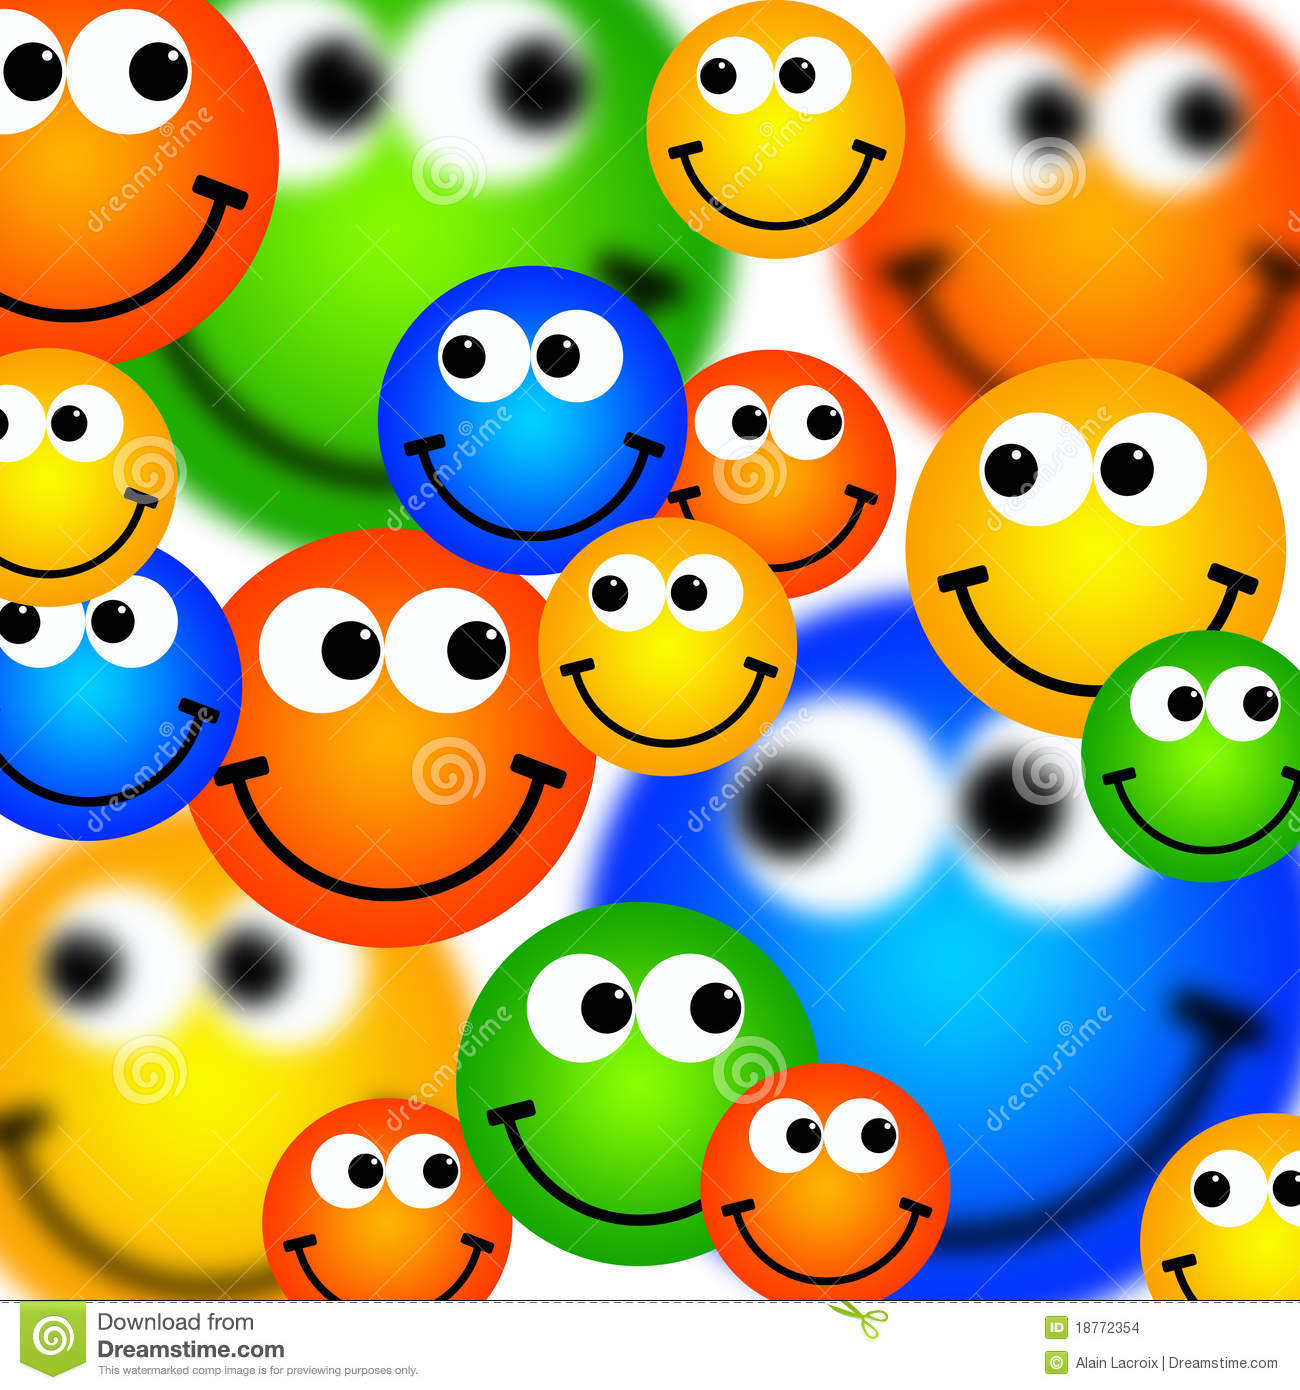 Background with lots of happy and colorful smileys